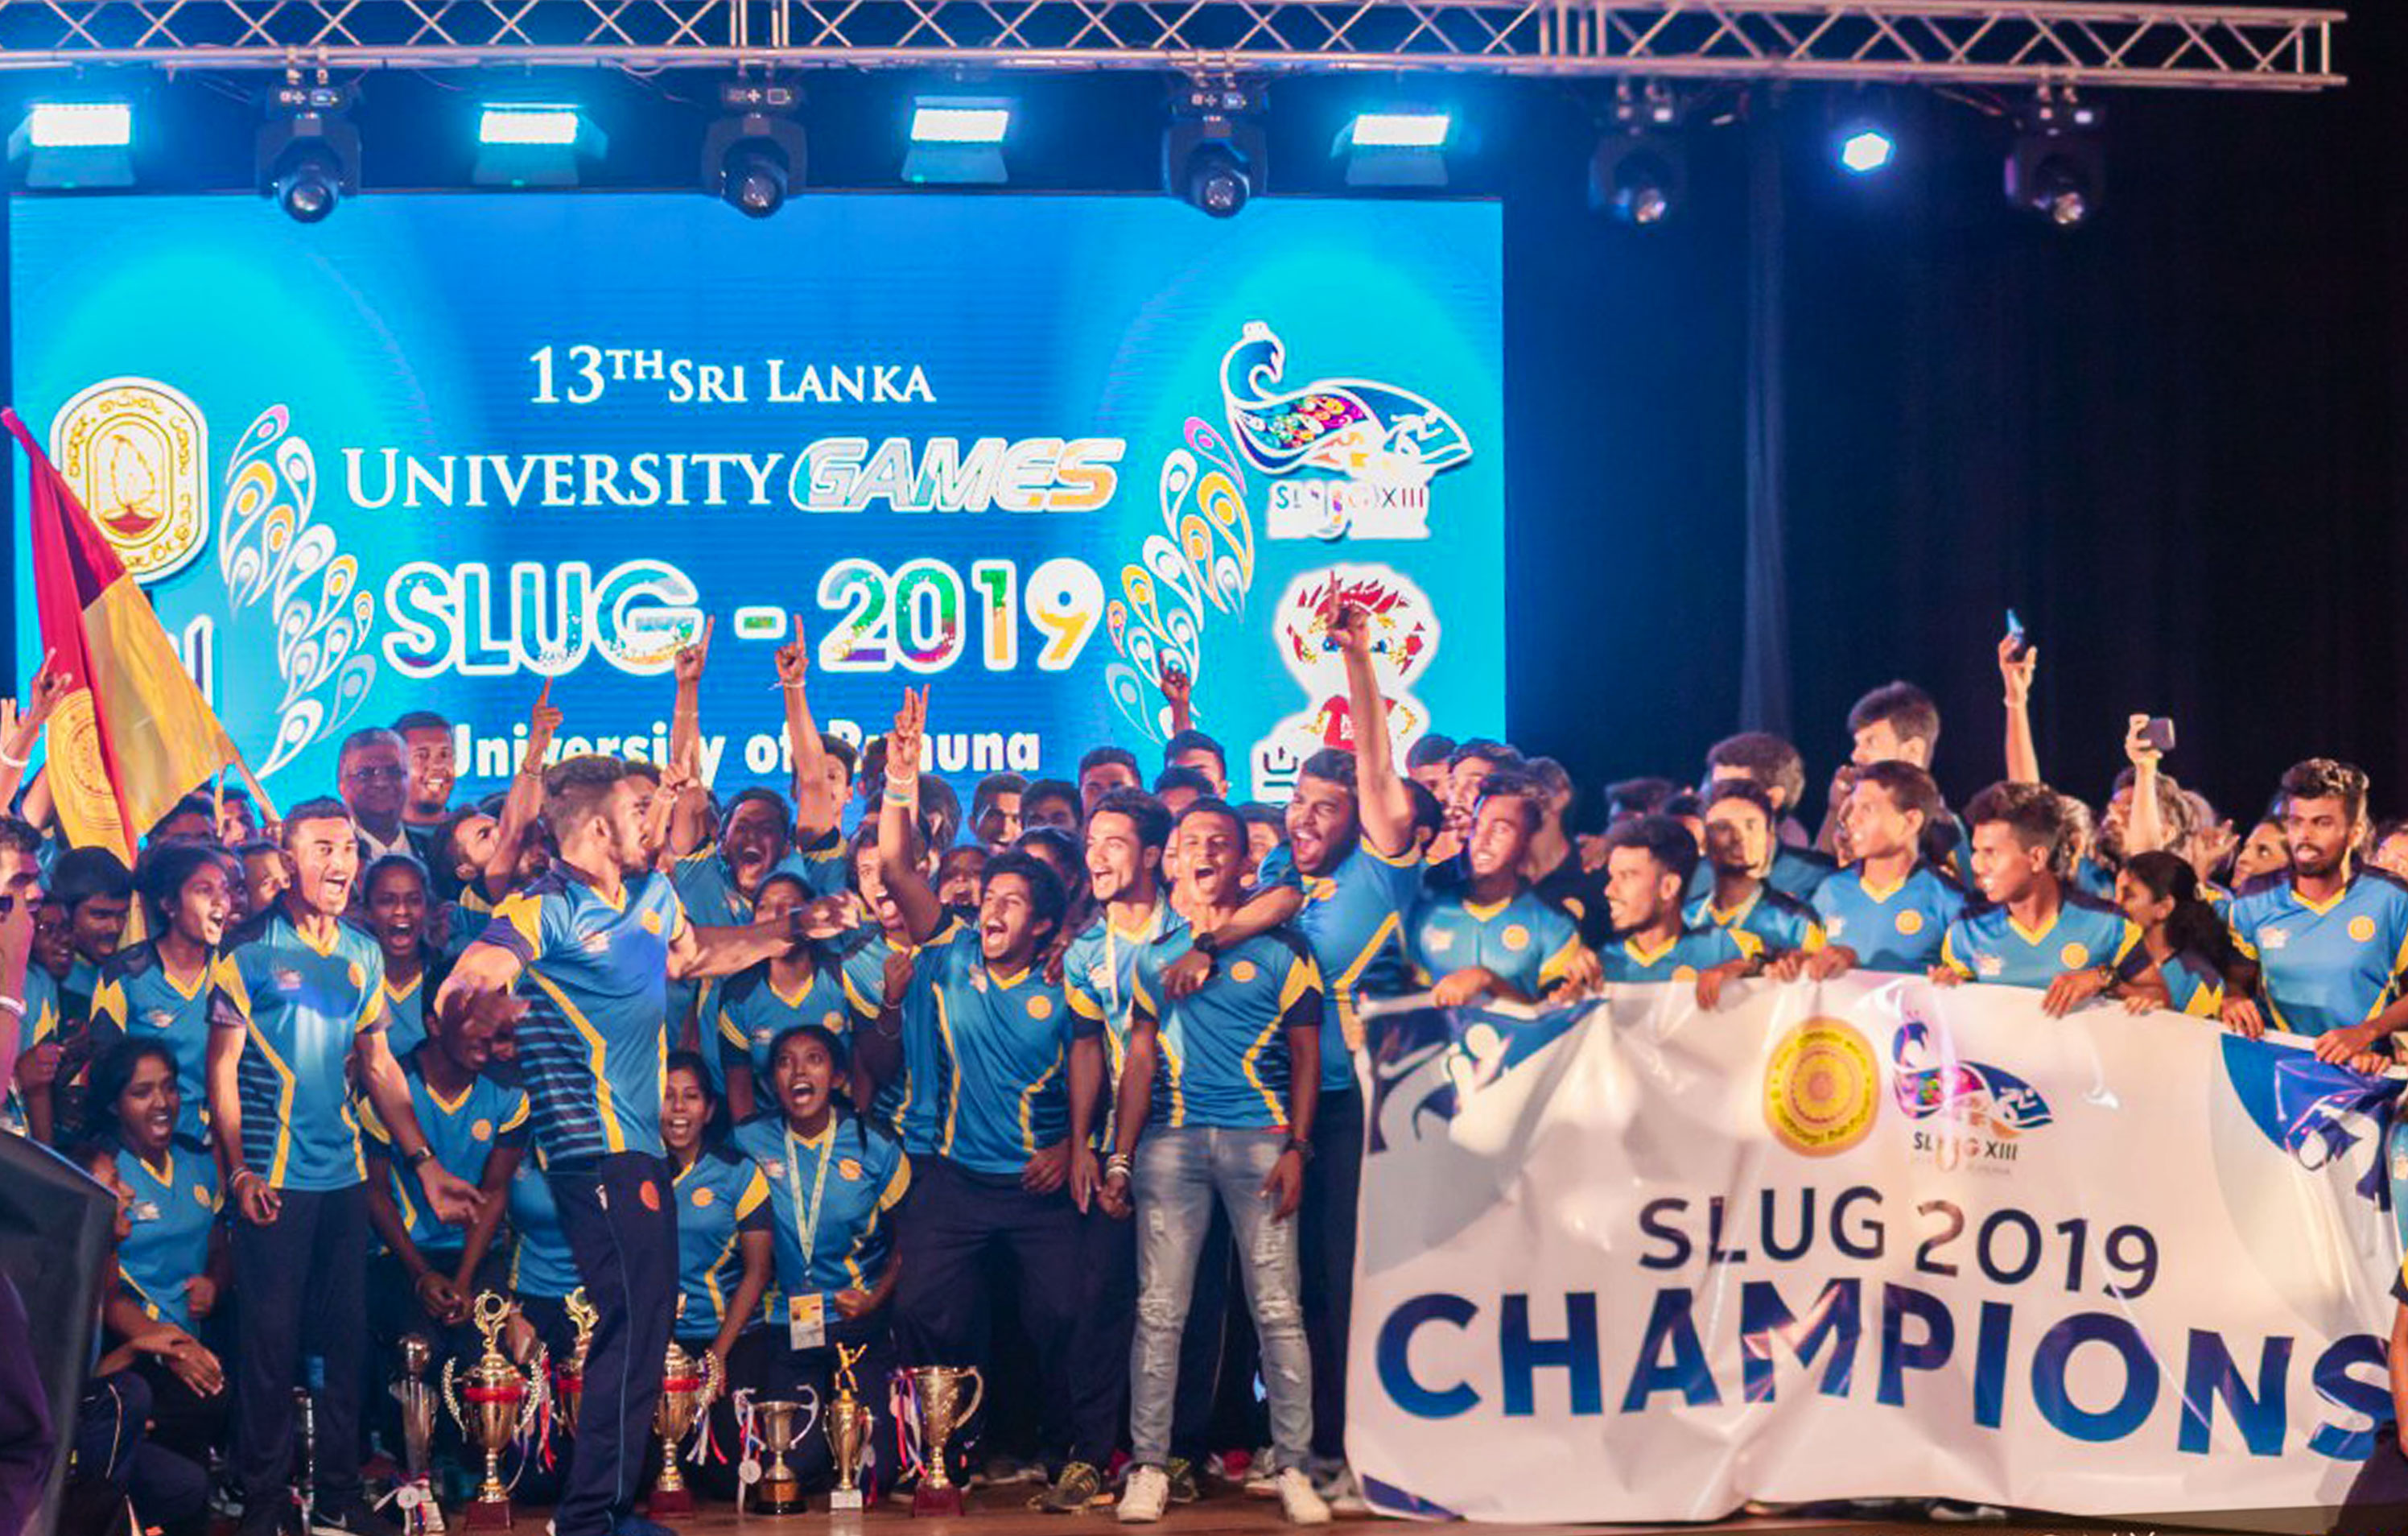 Japura becomes Champions in SLUG Sri Lanka University Games 2019